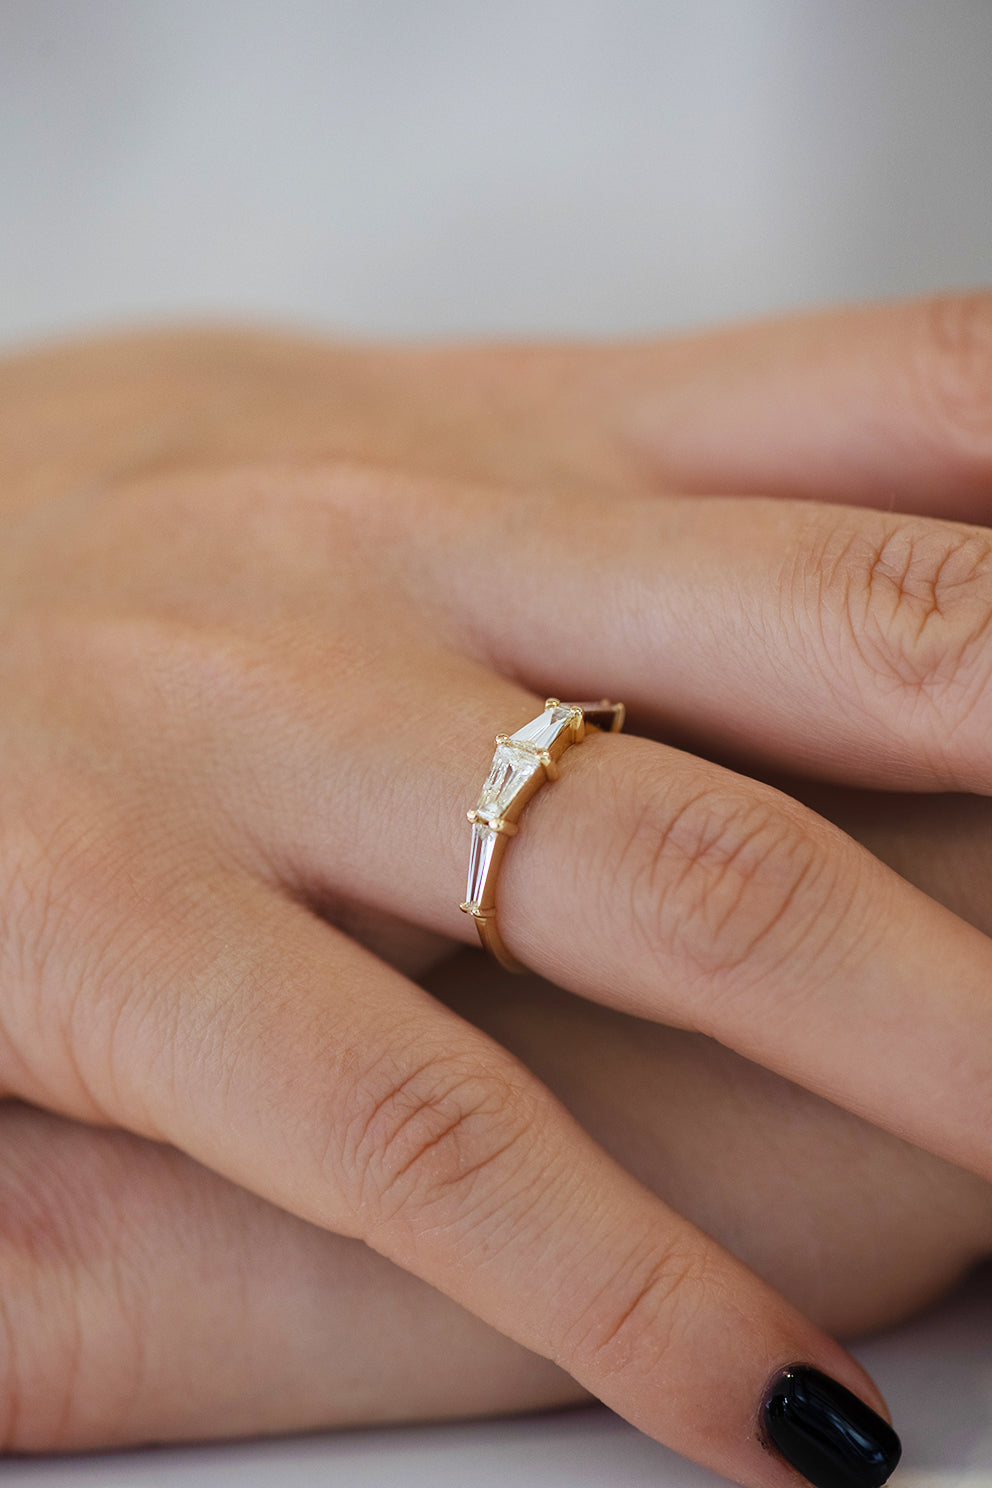 Tapered Baguette Engagement Ring on Hand Side View